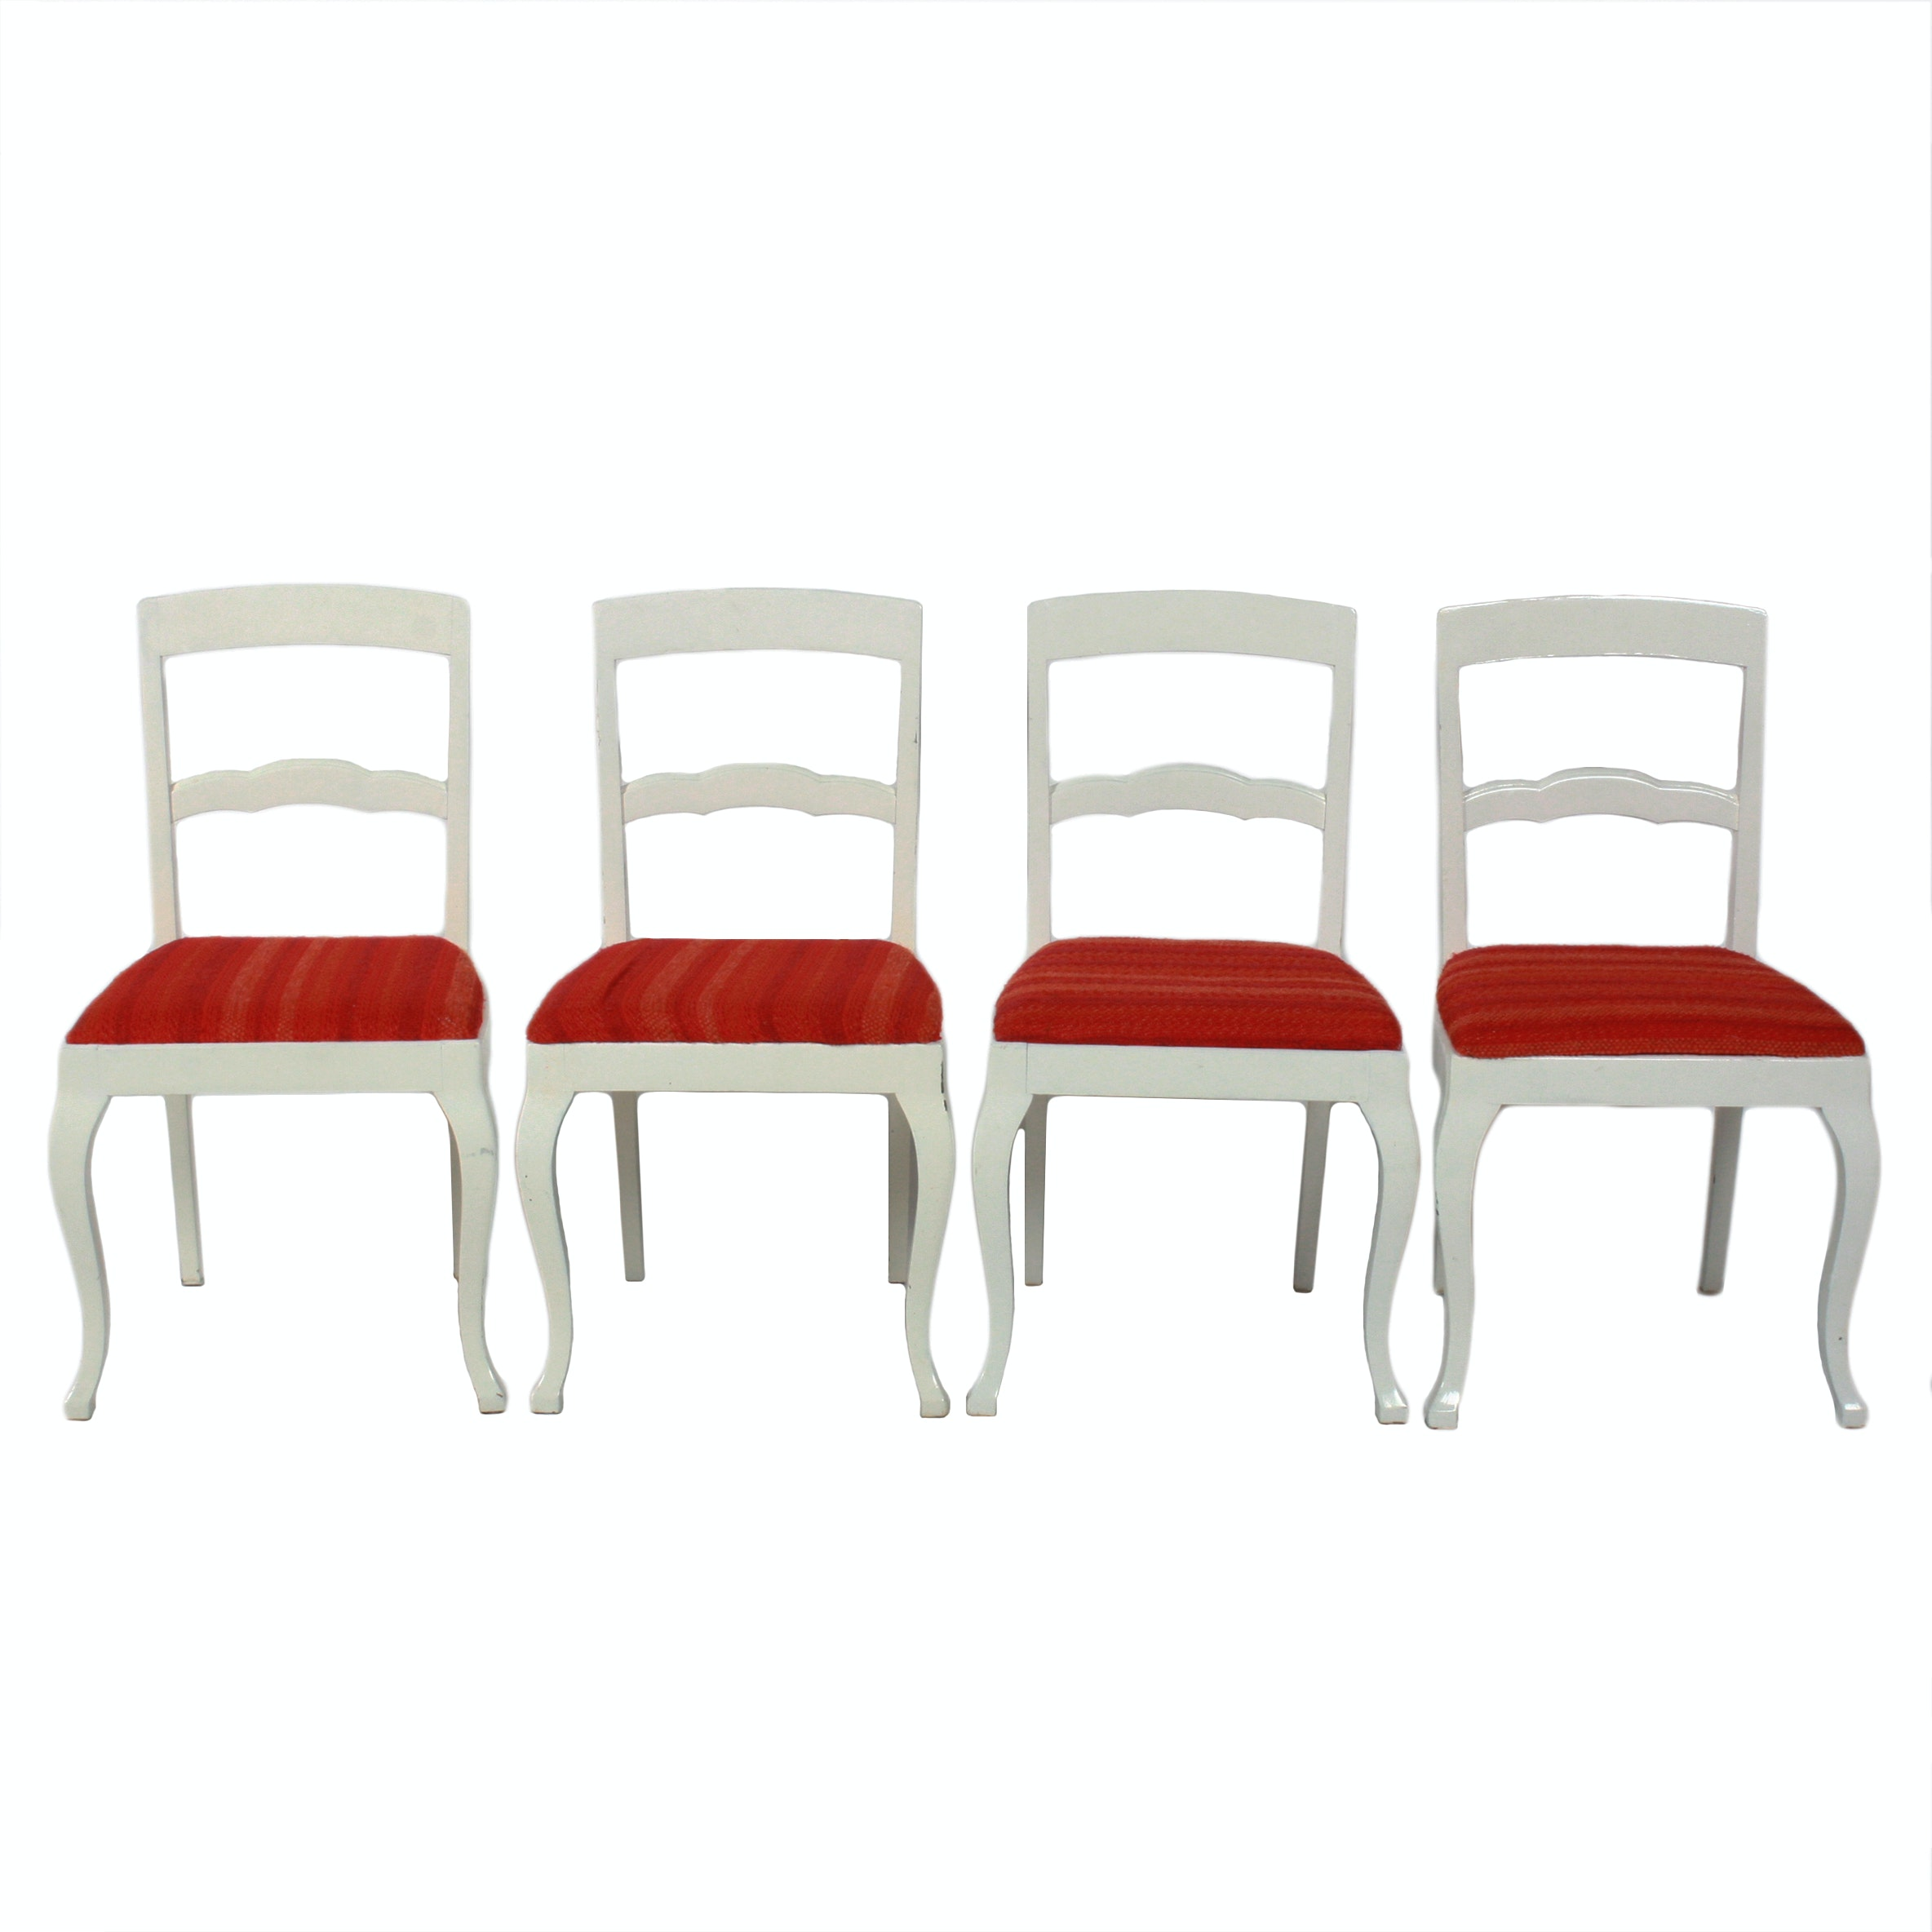 Four Painted Swedish Style Dining Chairs